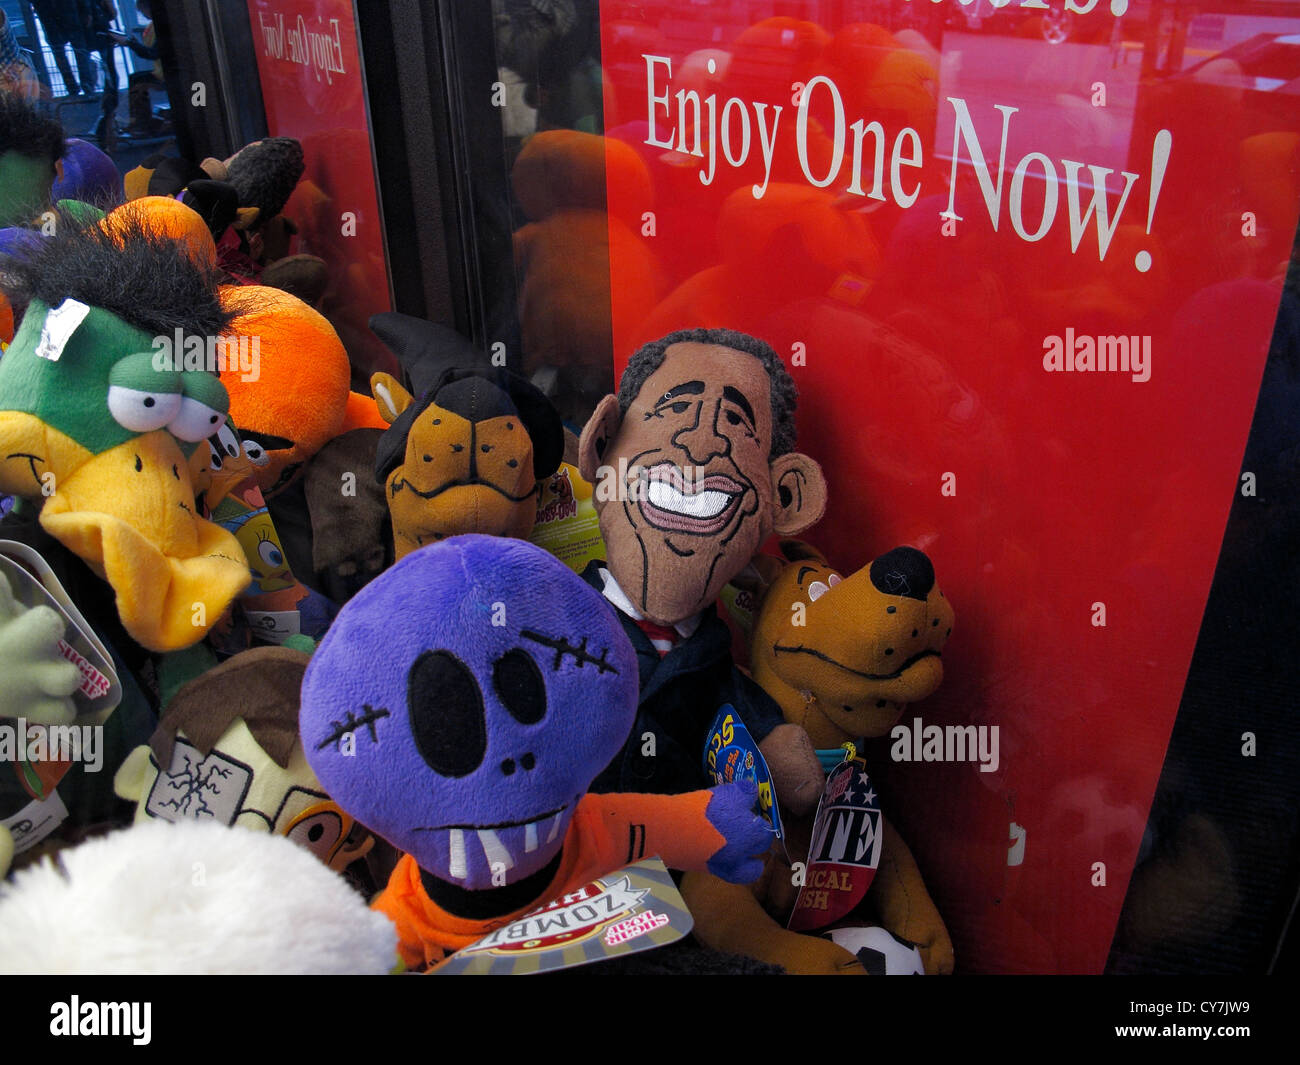 President Obama toy doll in a claw machine crane. - Stock Image